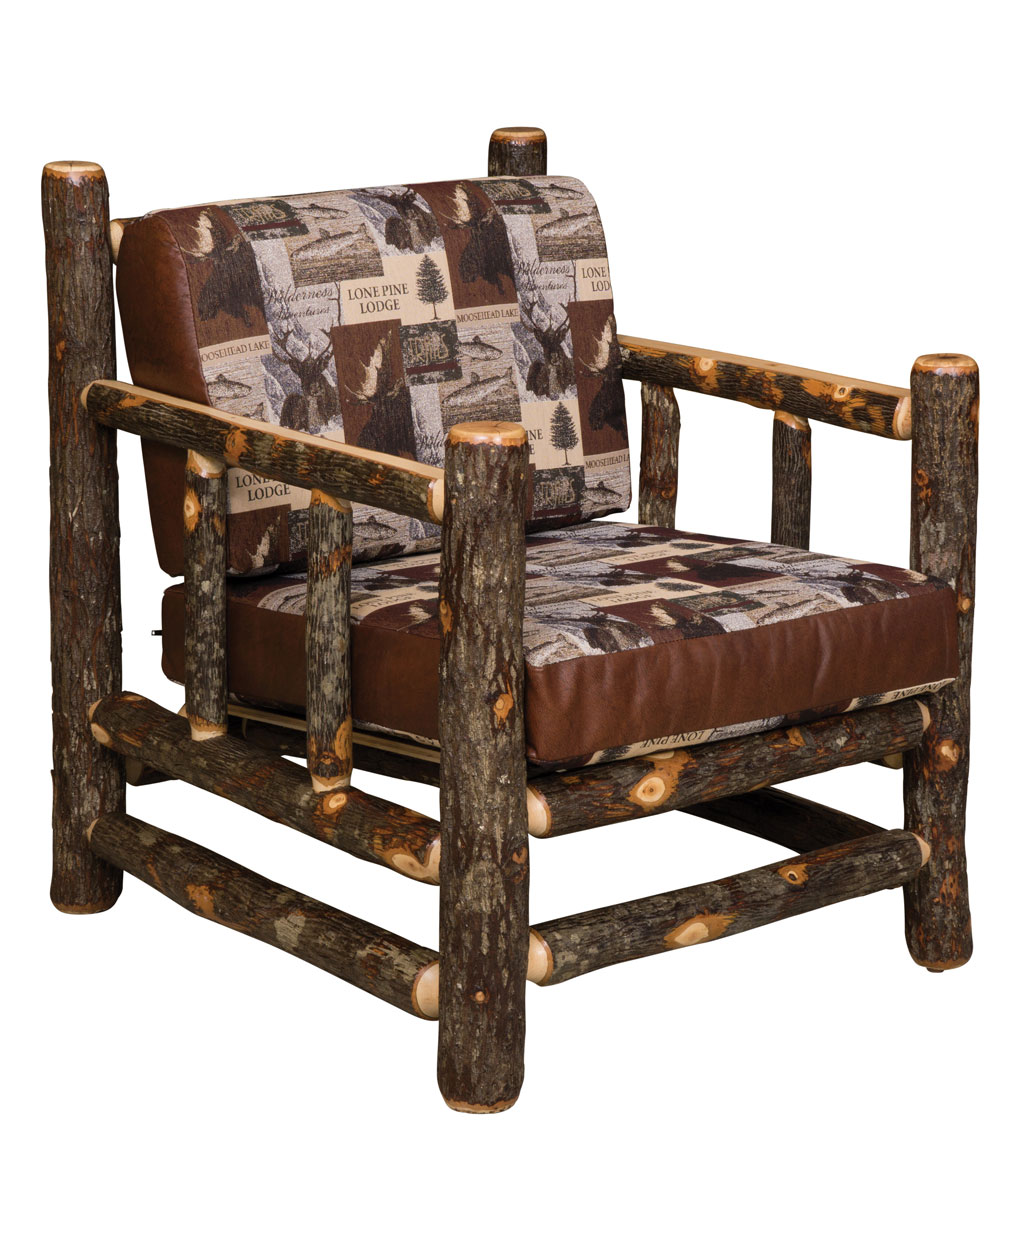 Hickory lodge chair amish direct furniture for Hickory chair bedroom furniture